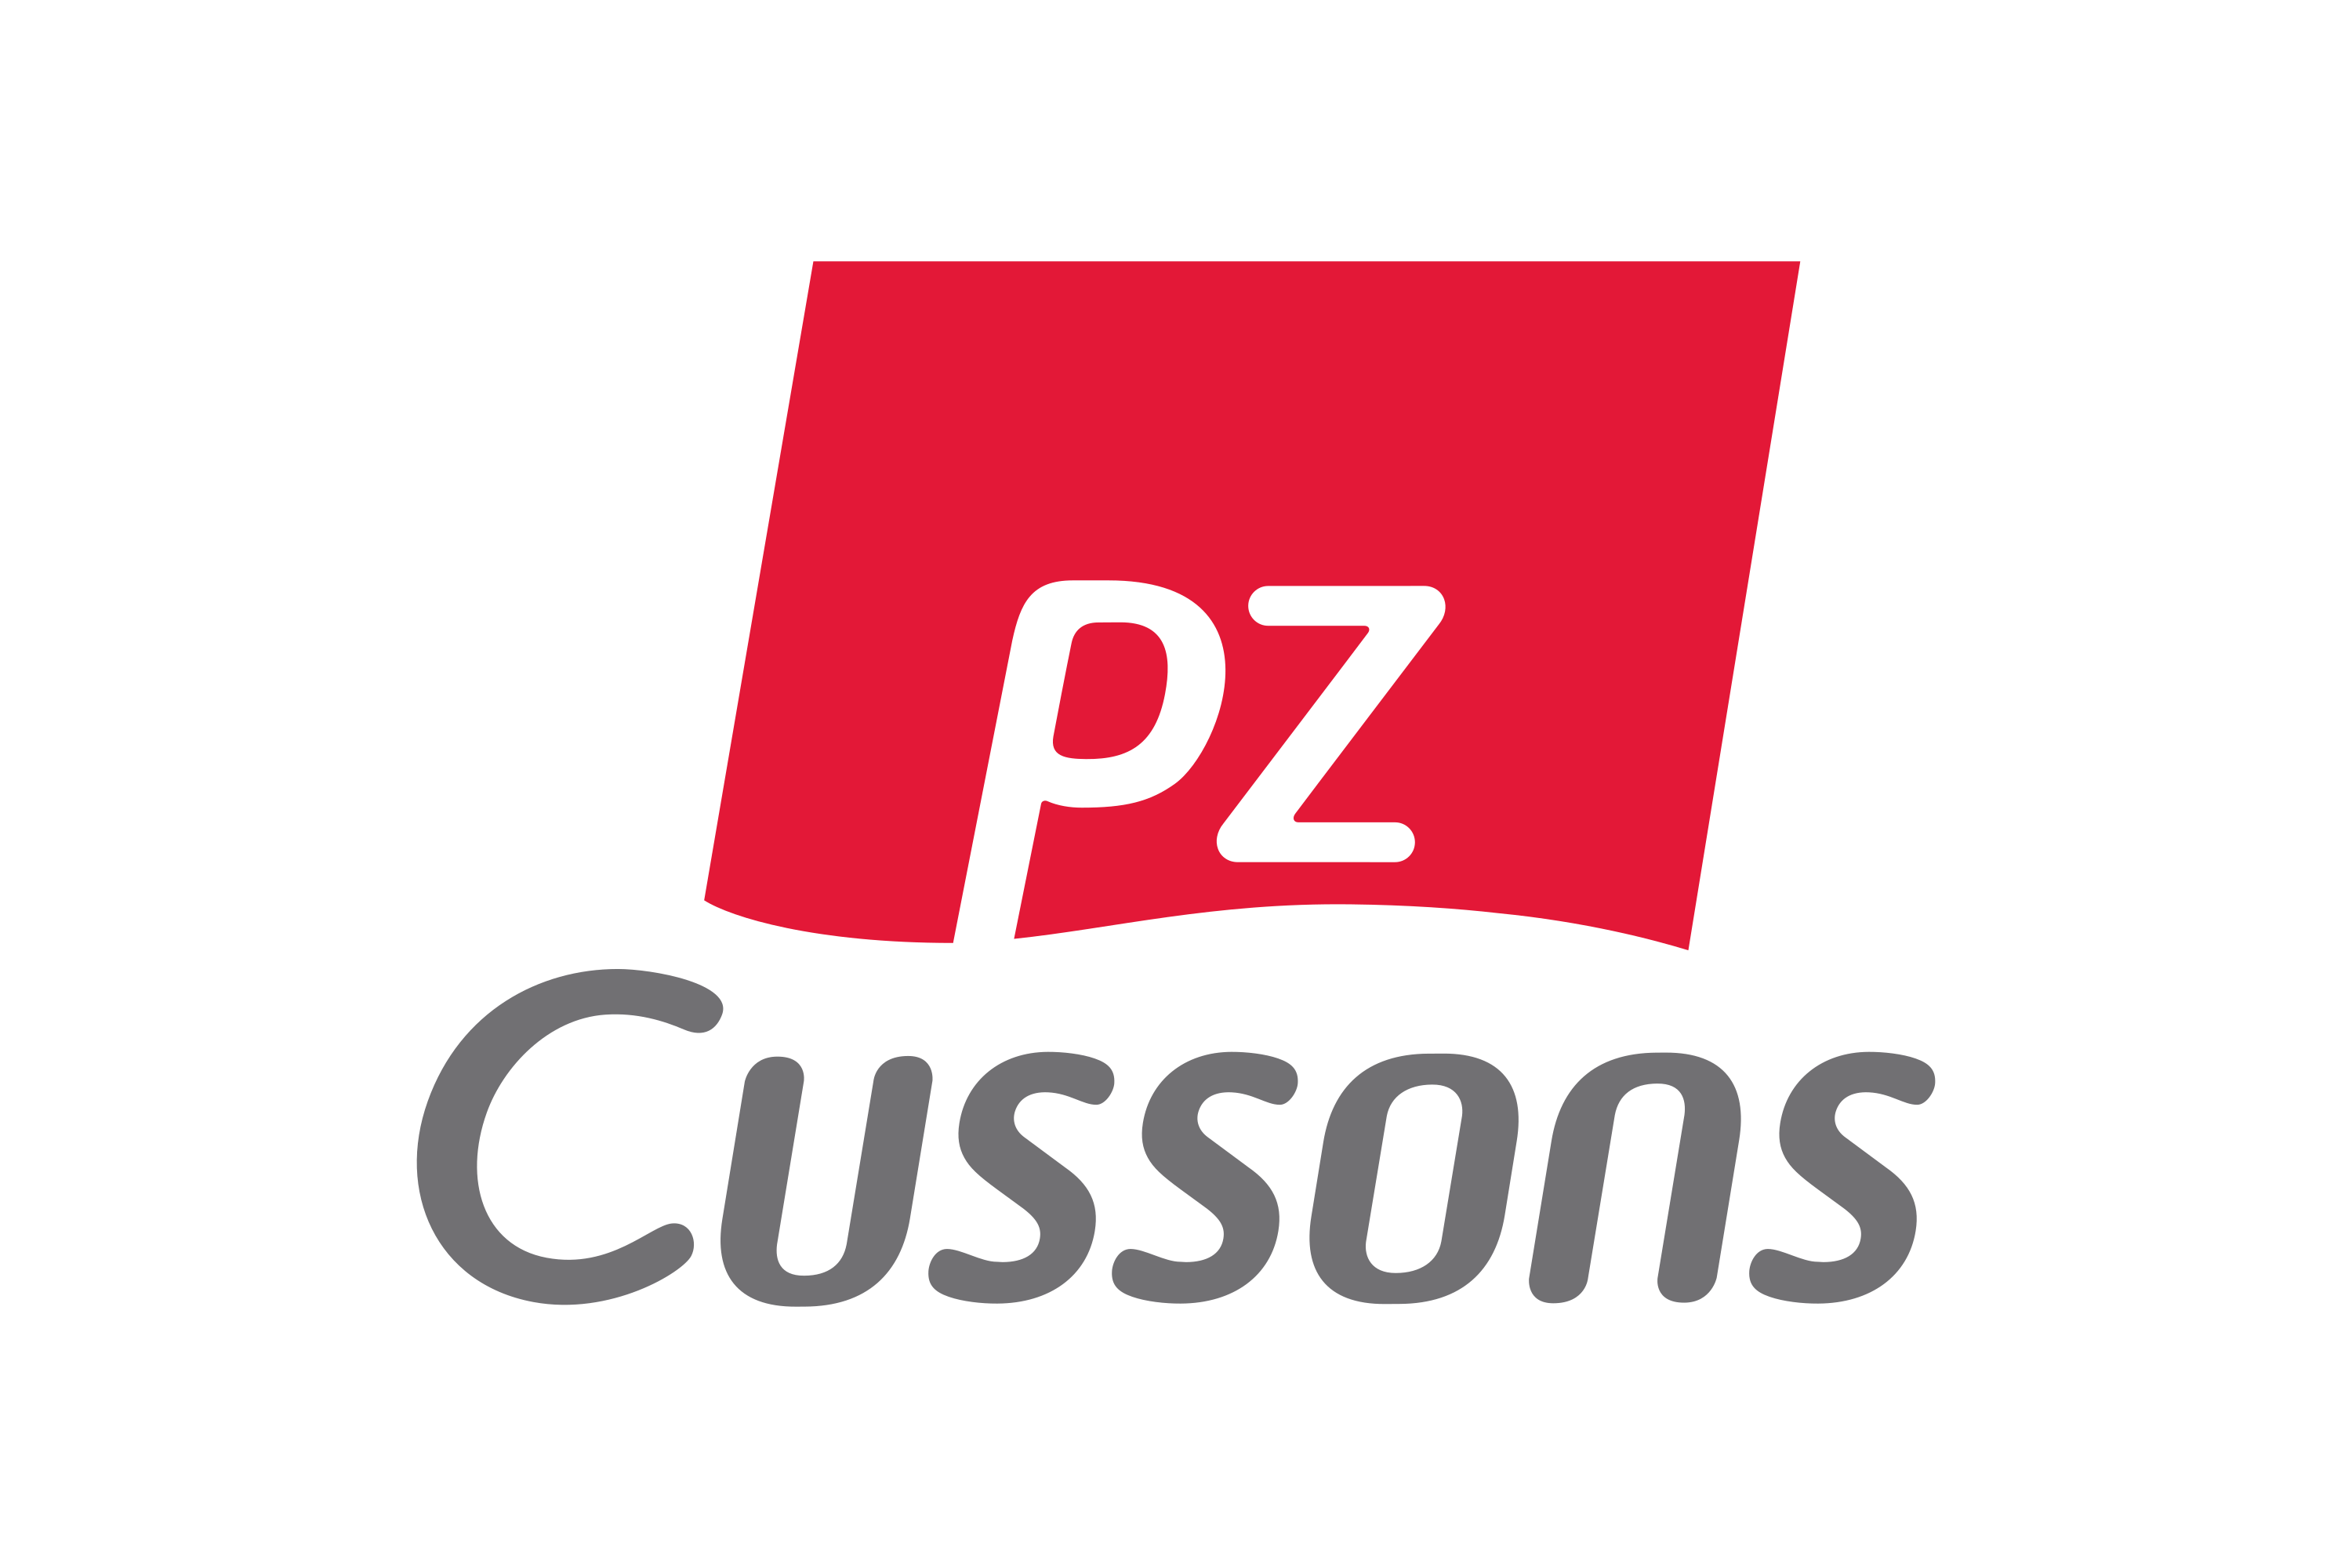 Download PZ Cussons Logo in SVG Vector or PNG File Format ...